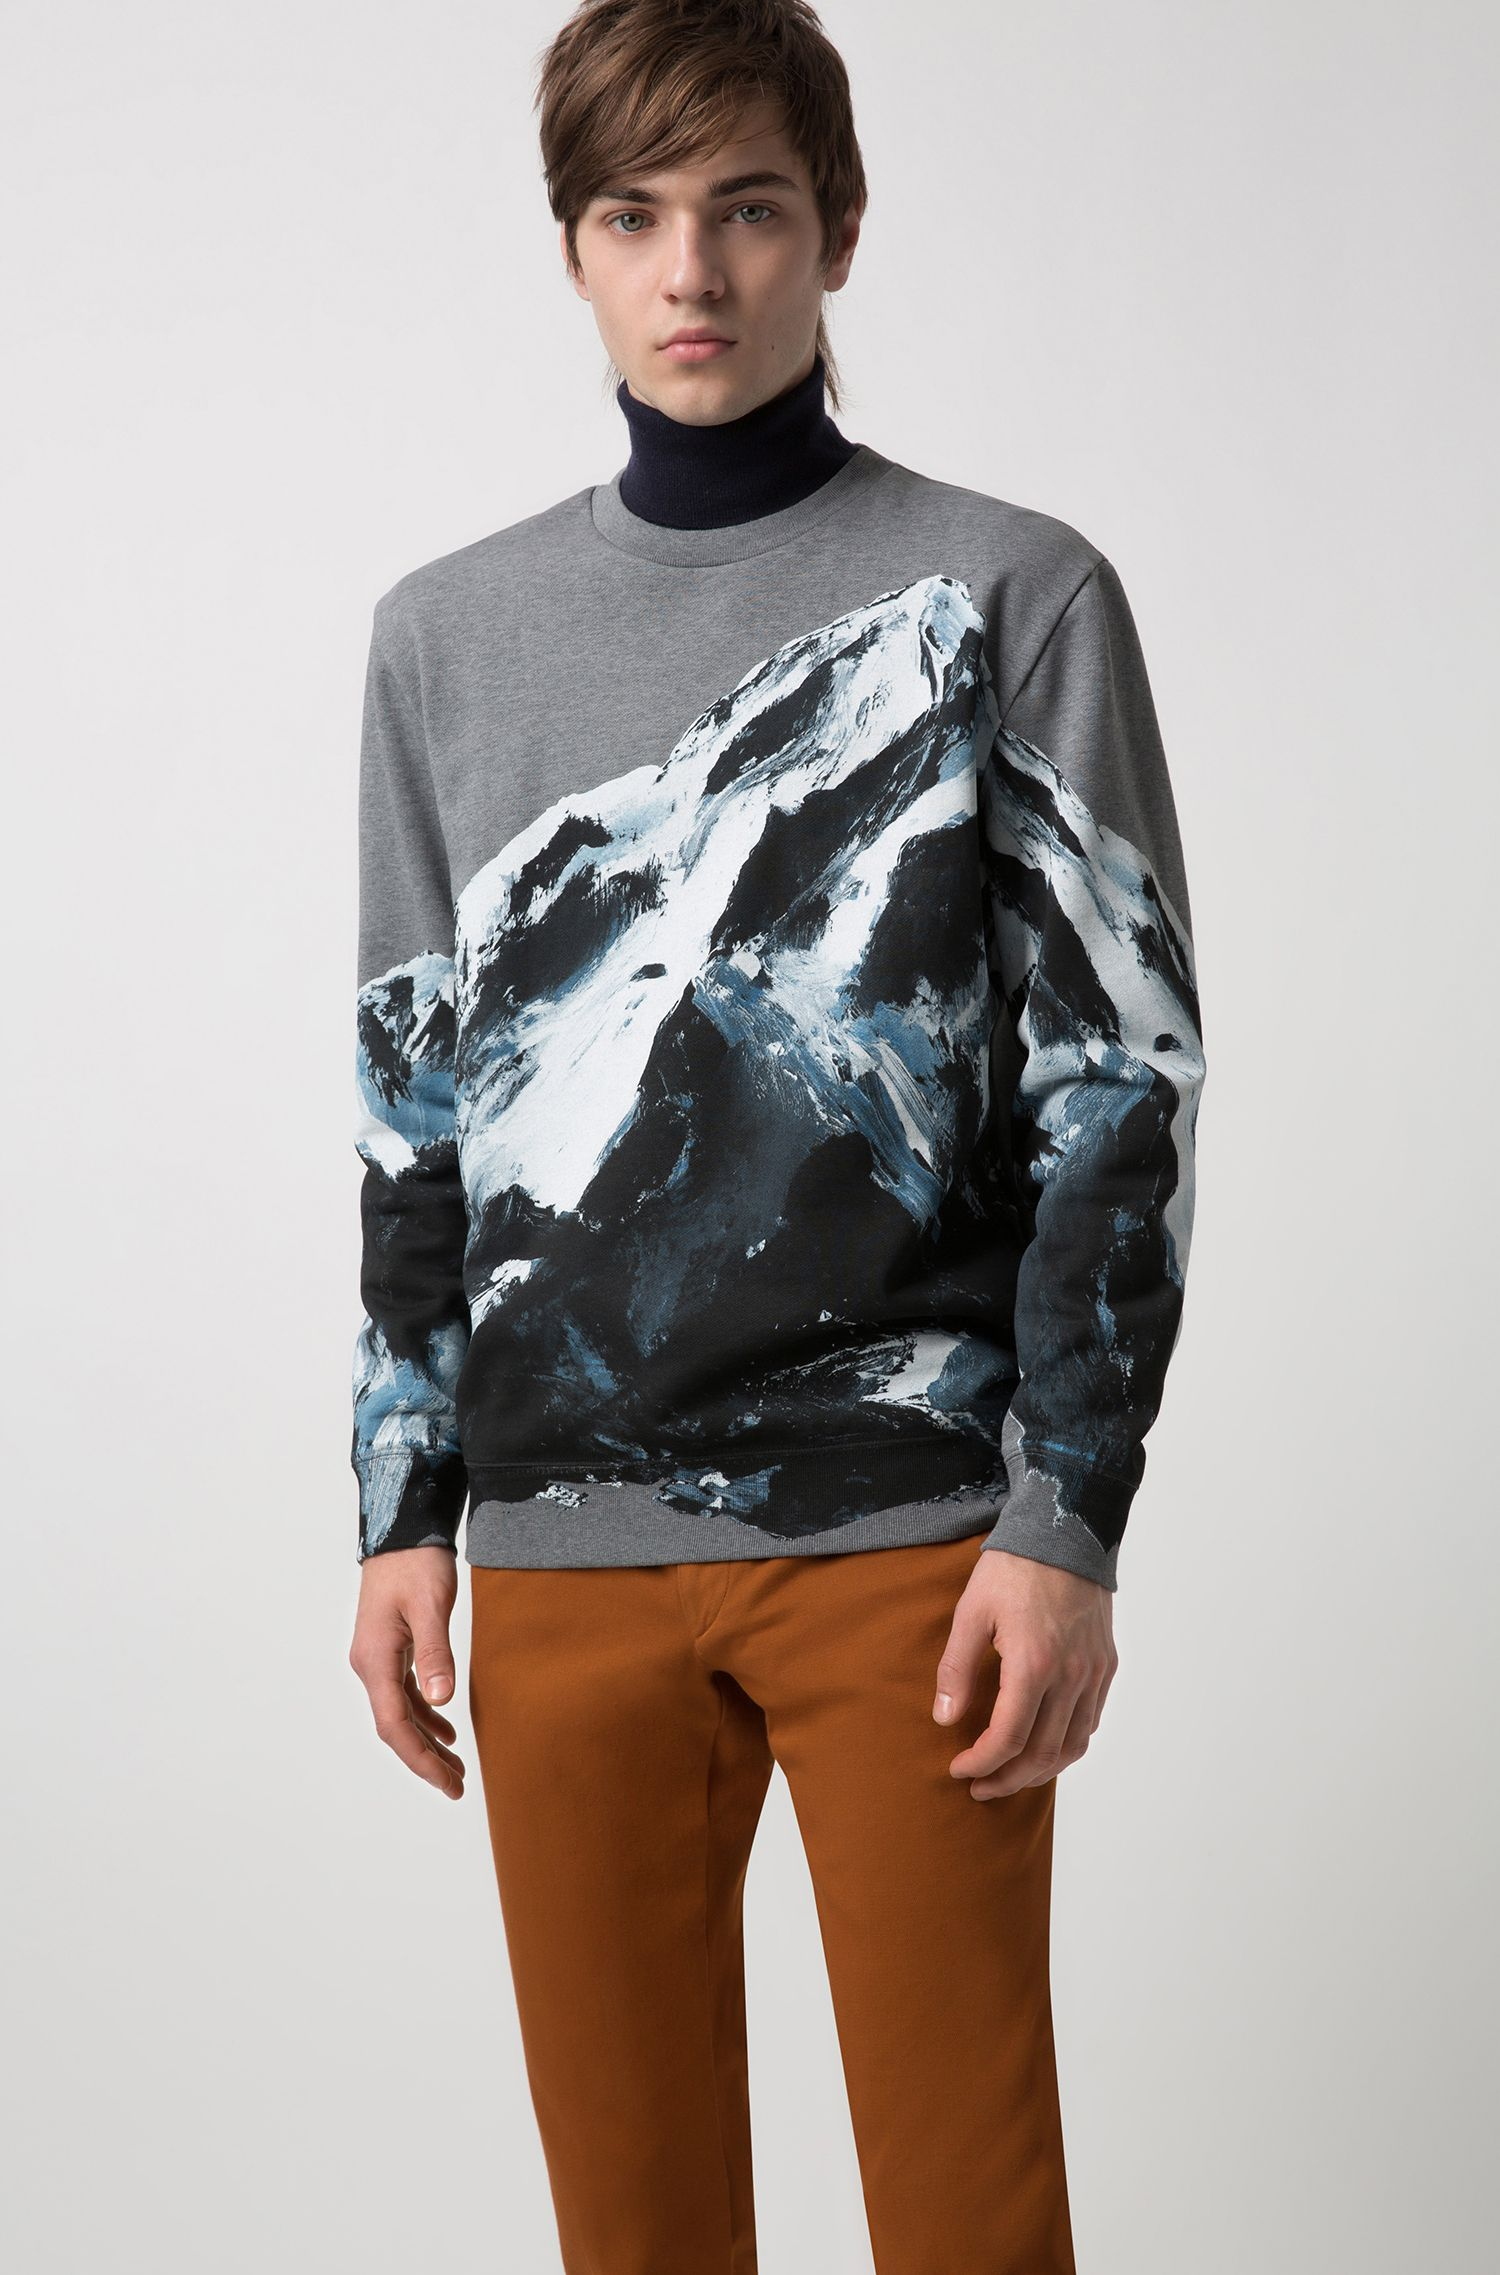 Oversized-fit sweatshirt in cotton with seasonal mountain graphic, Patterned